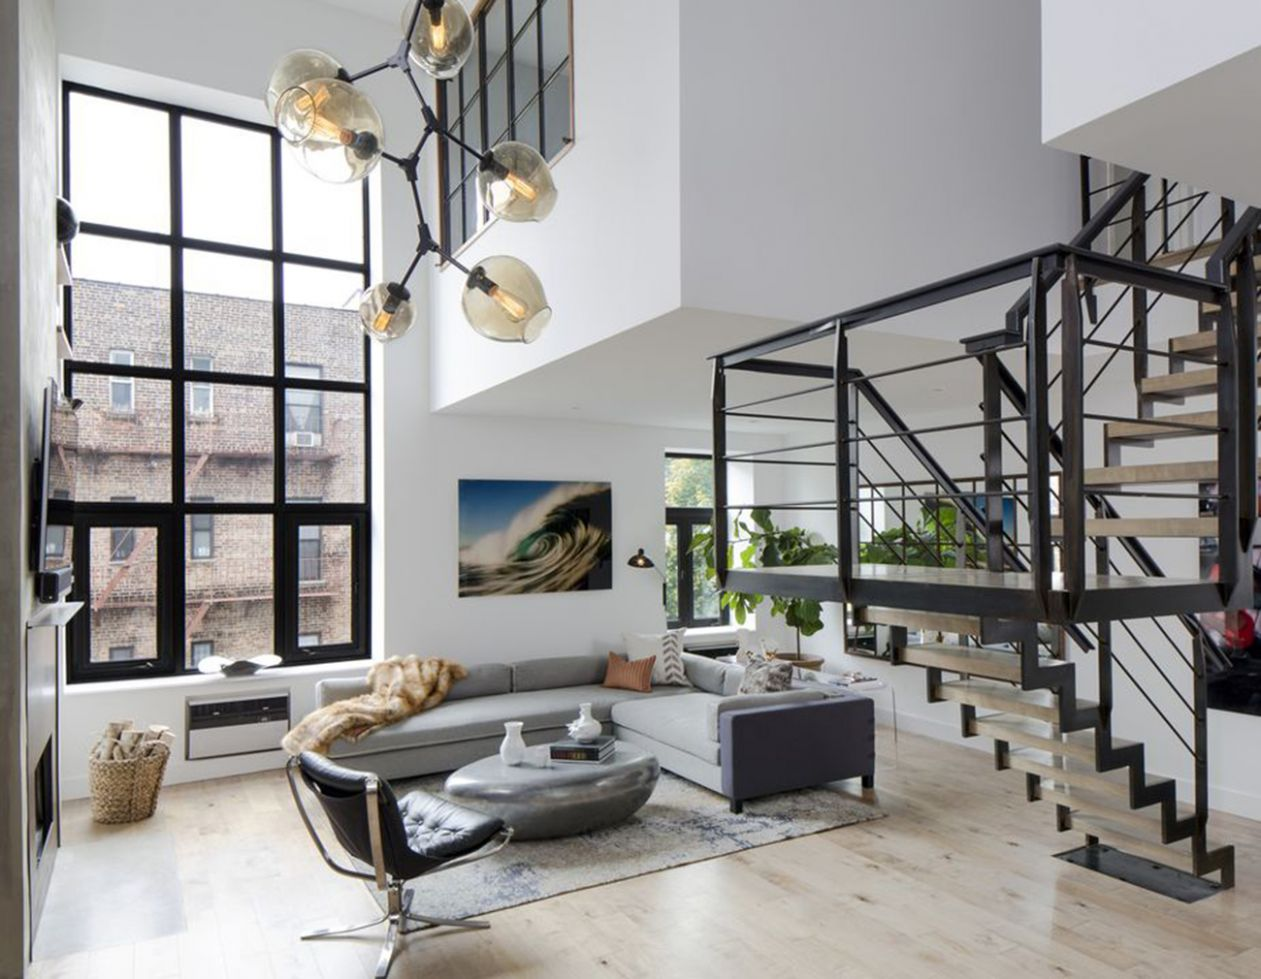 12 of the best New York apartments to rent